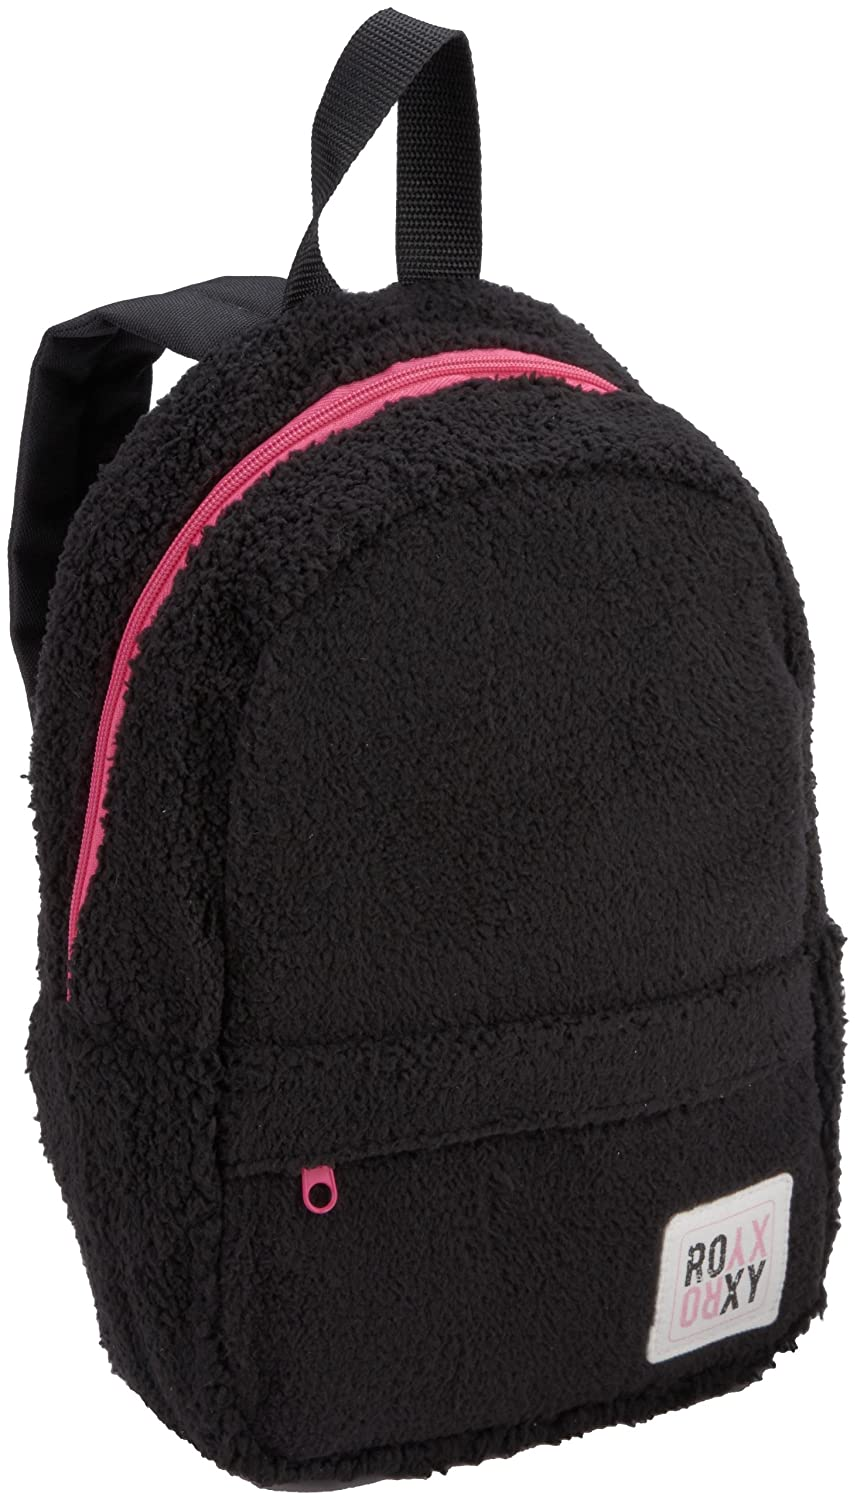 Roxy Kids Girls 7-16 Cuddle Adorable Sherpa Backpack, Black, One Size